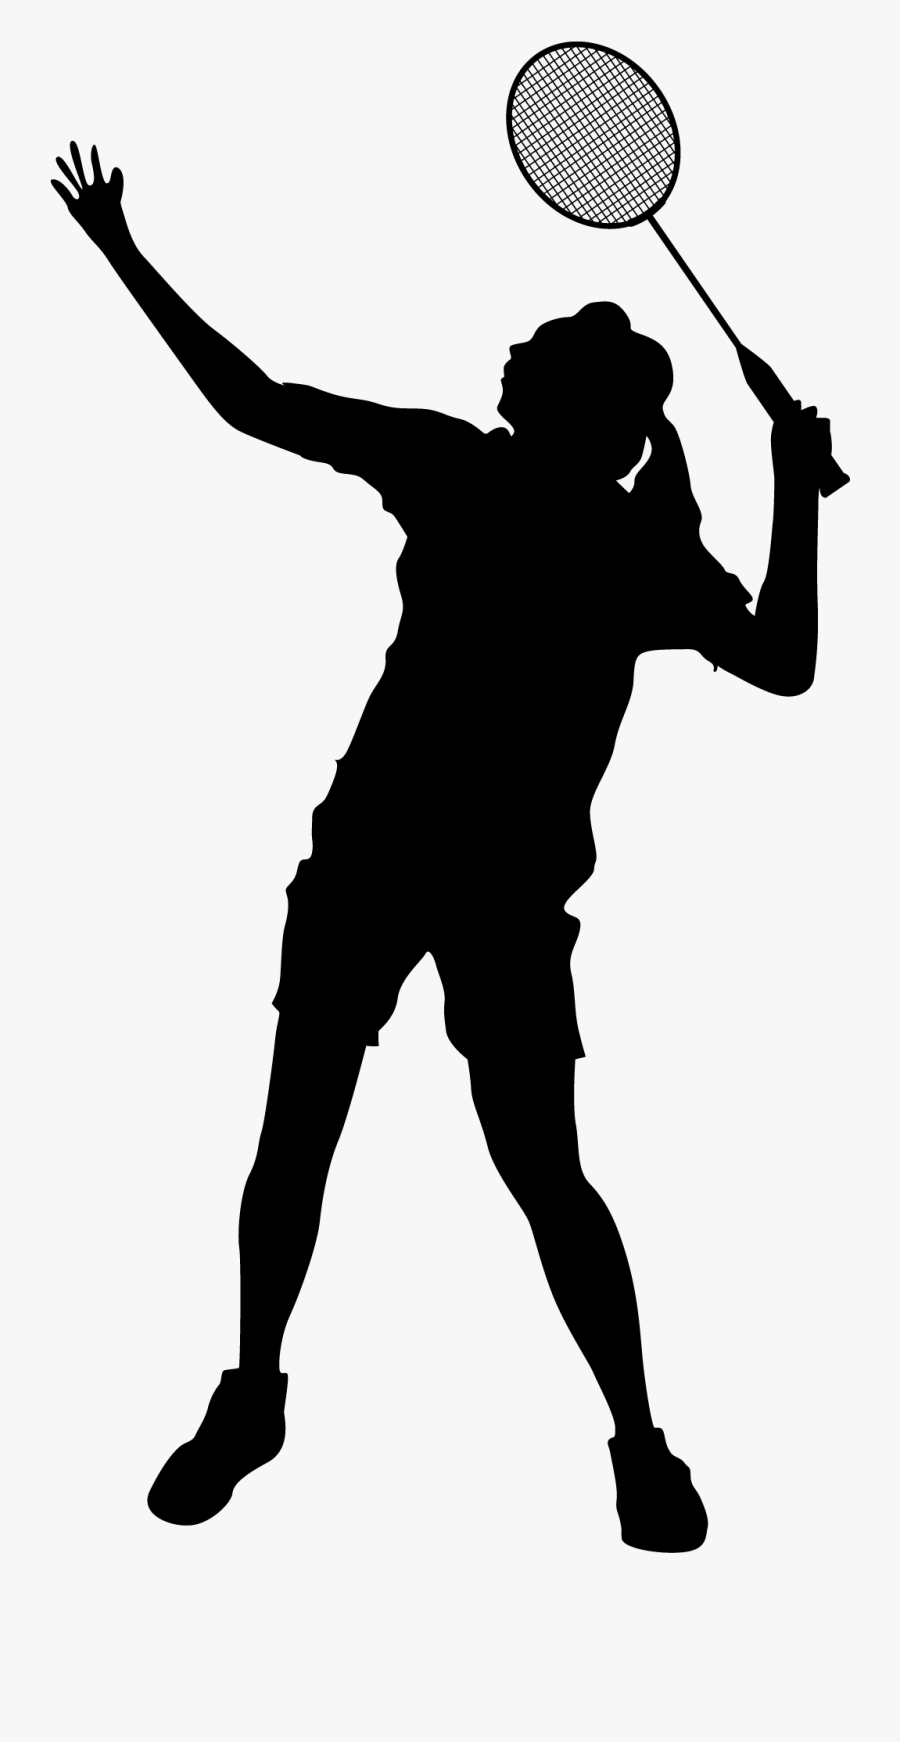 Badminton Download Clip Art - Female Badminton Player Silhouette, Transparent Clipart